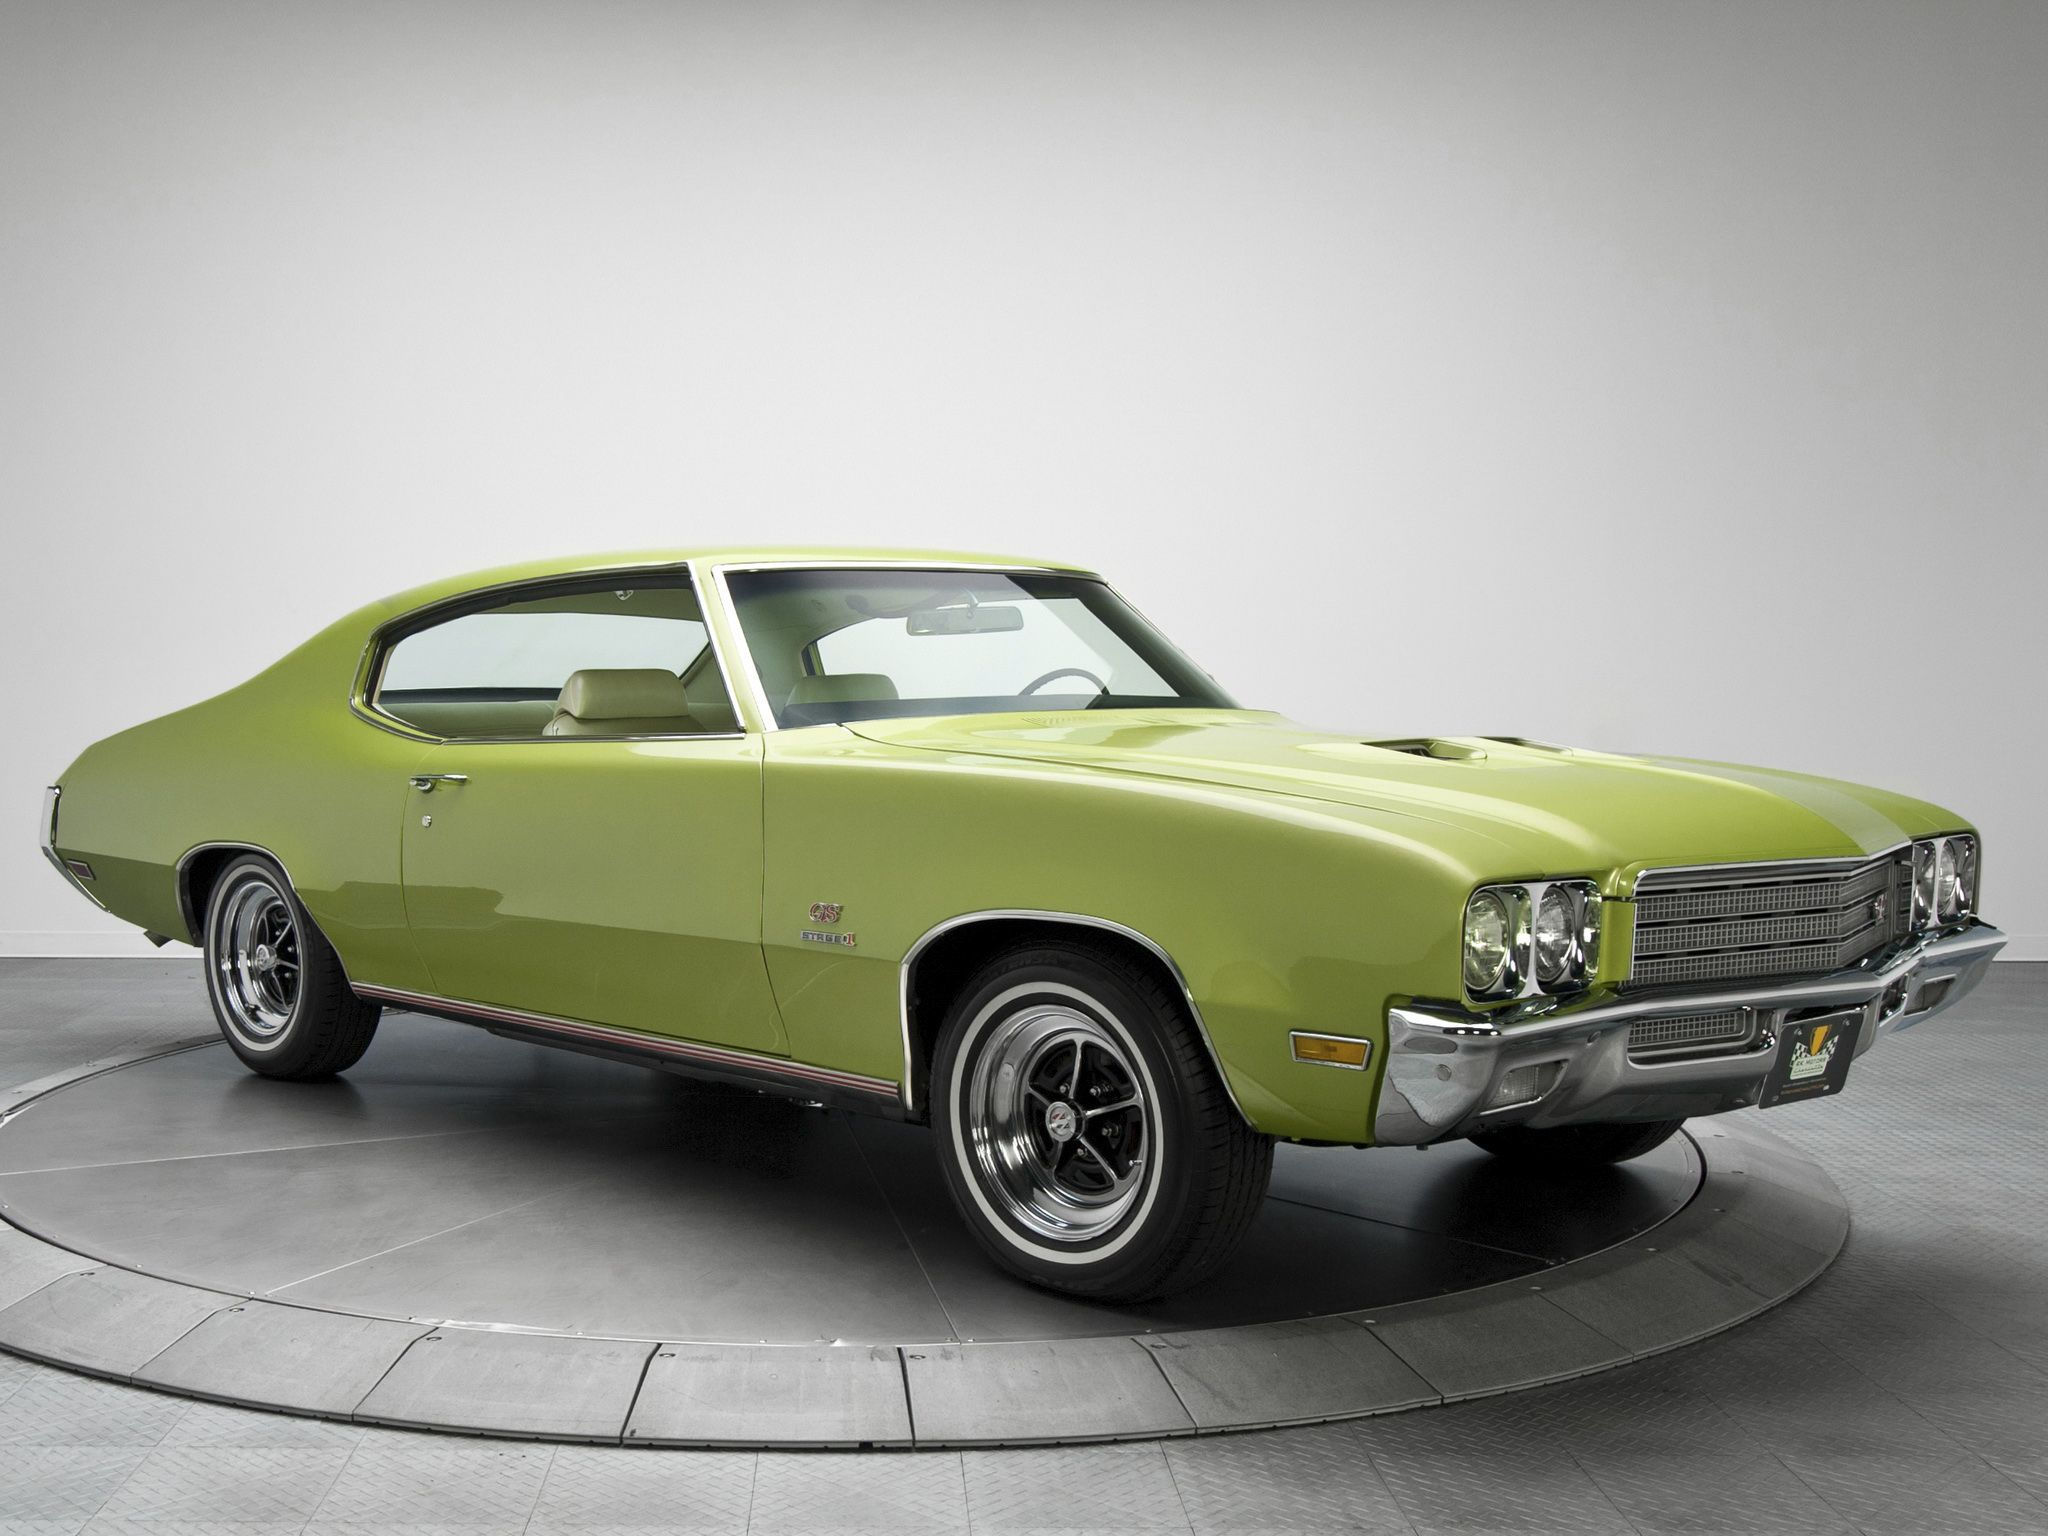 buick gs 455 stage 1 - 1971 | buick | pinterest | buick, buick